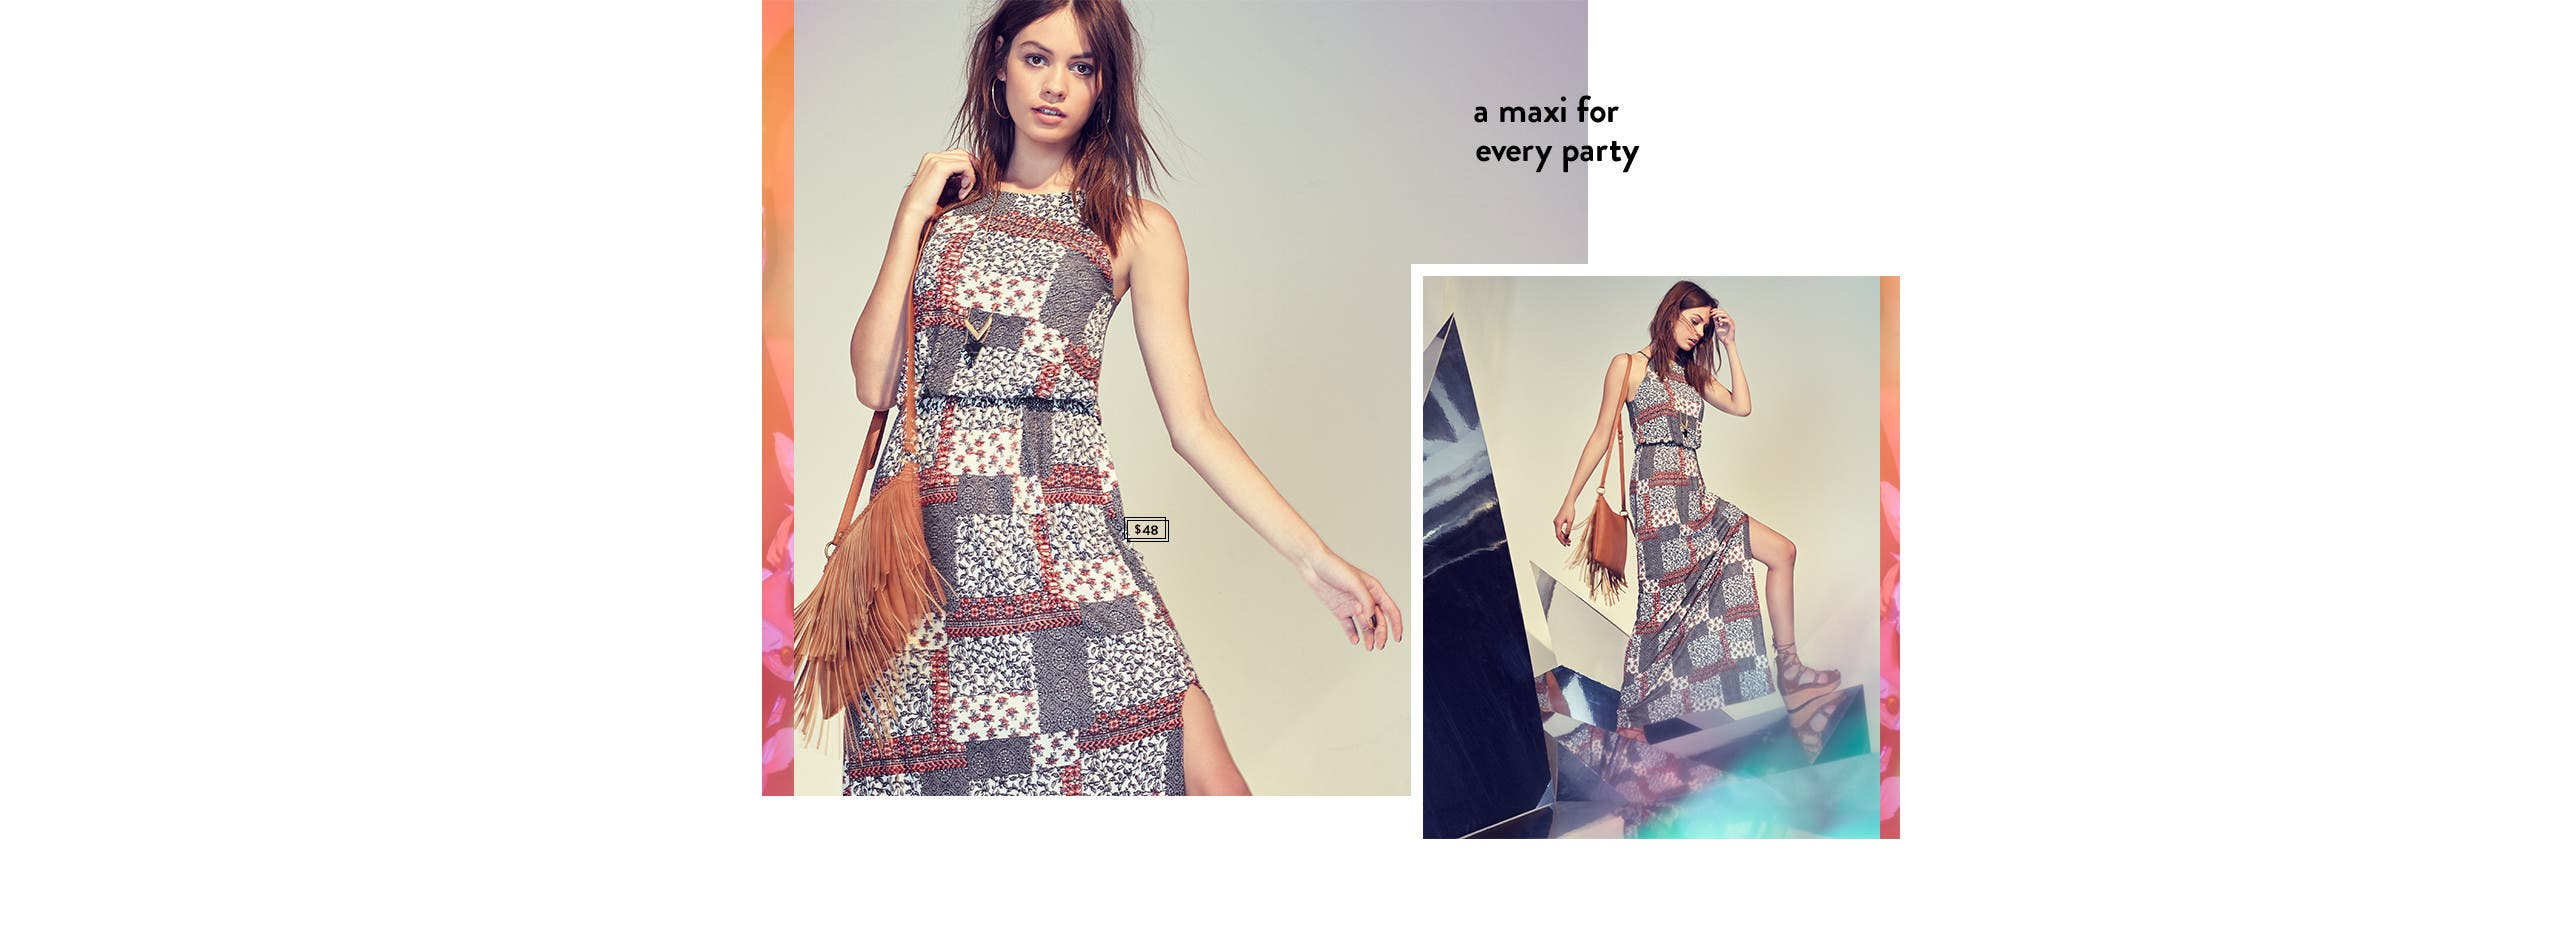 A maxi dress for every party.